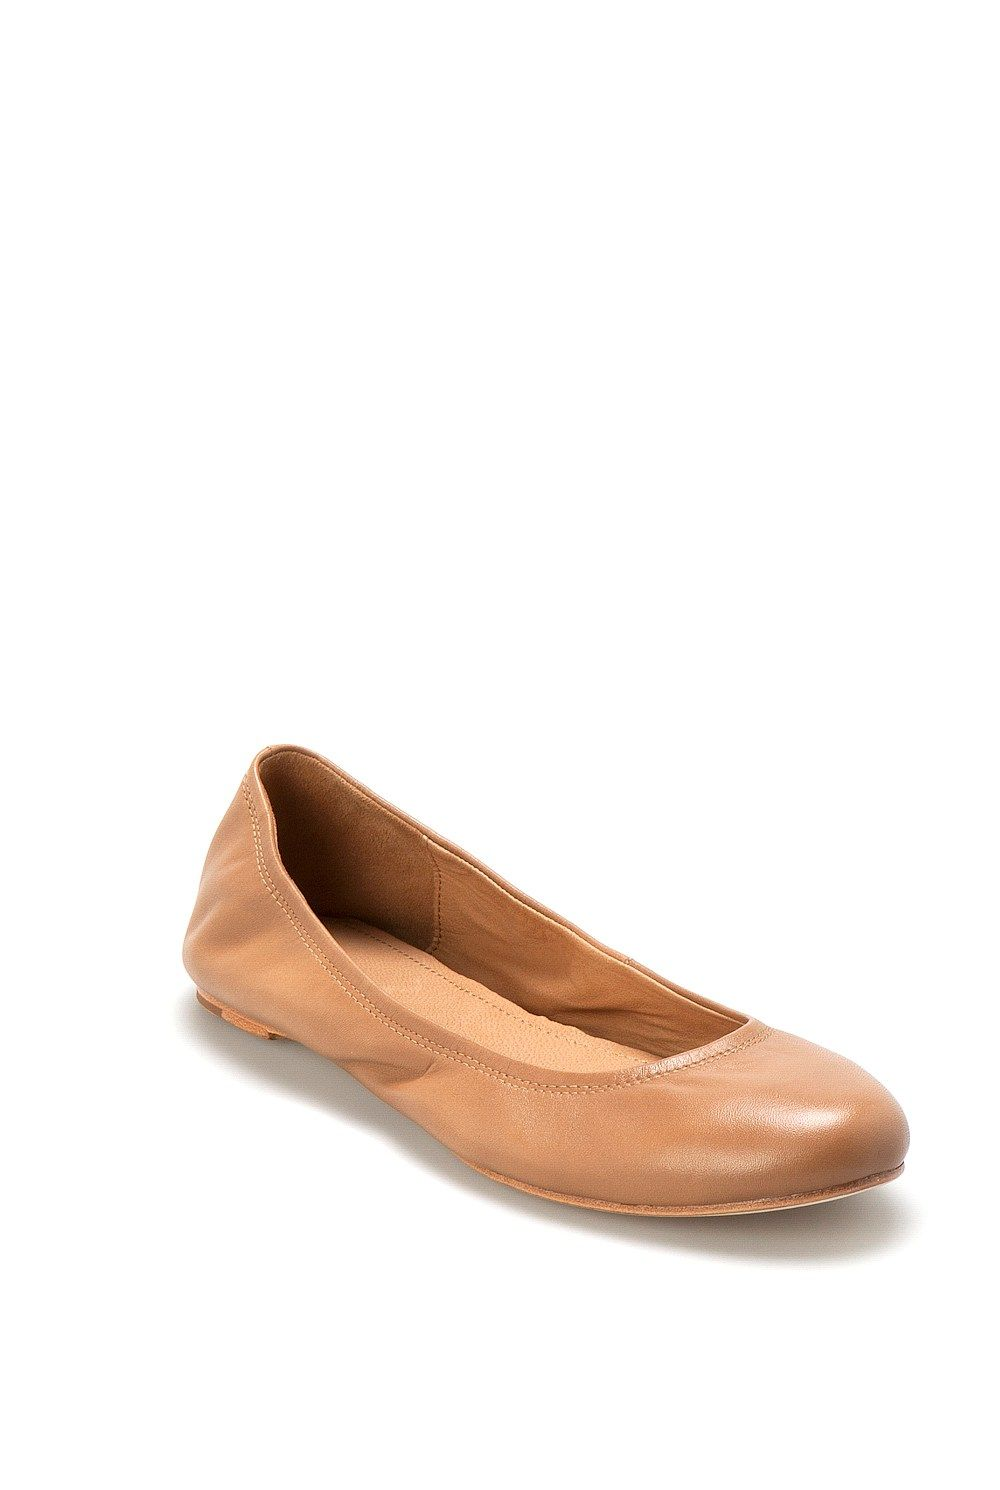 b1566ca0f06 Country Road - Women s Flat Shoes Online - Letitia Soft Leather Ballet